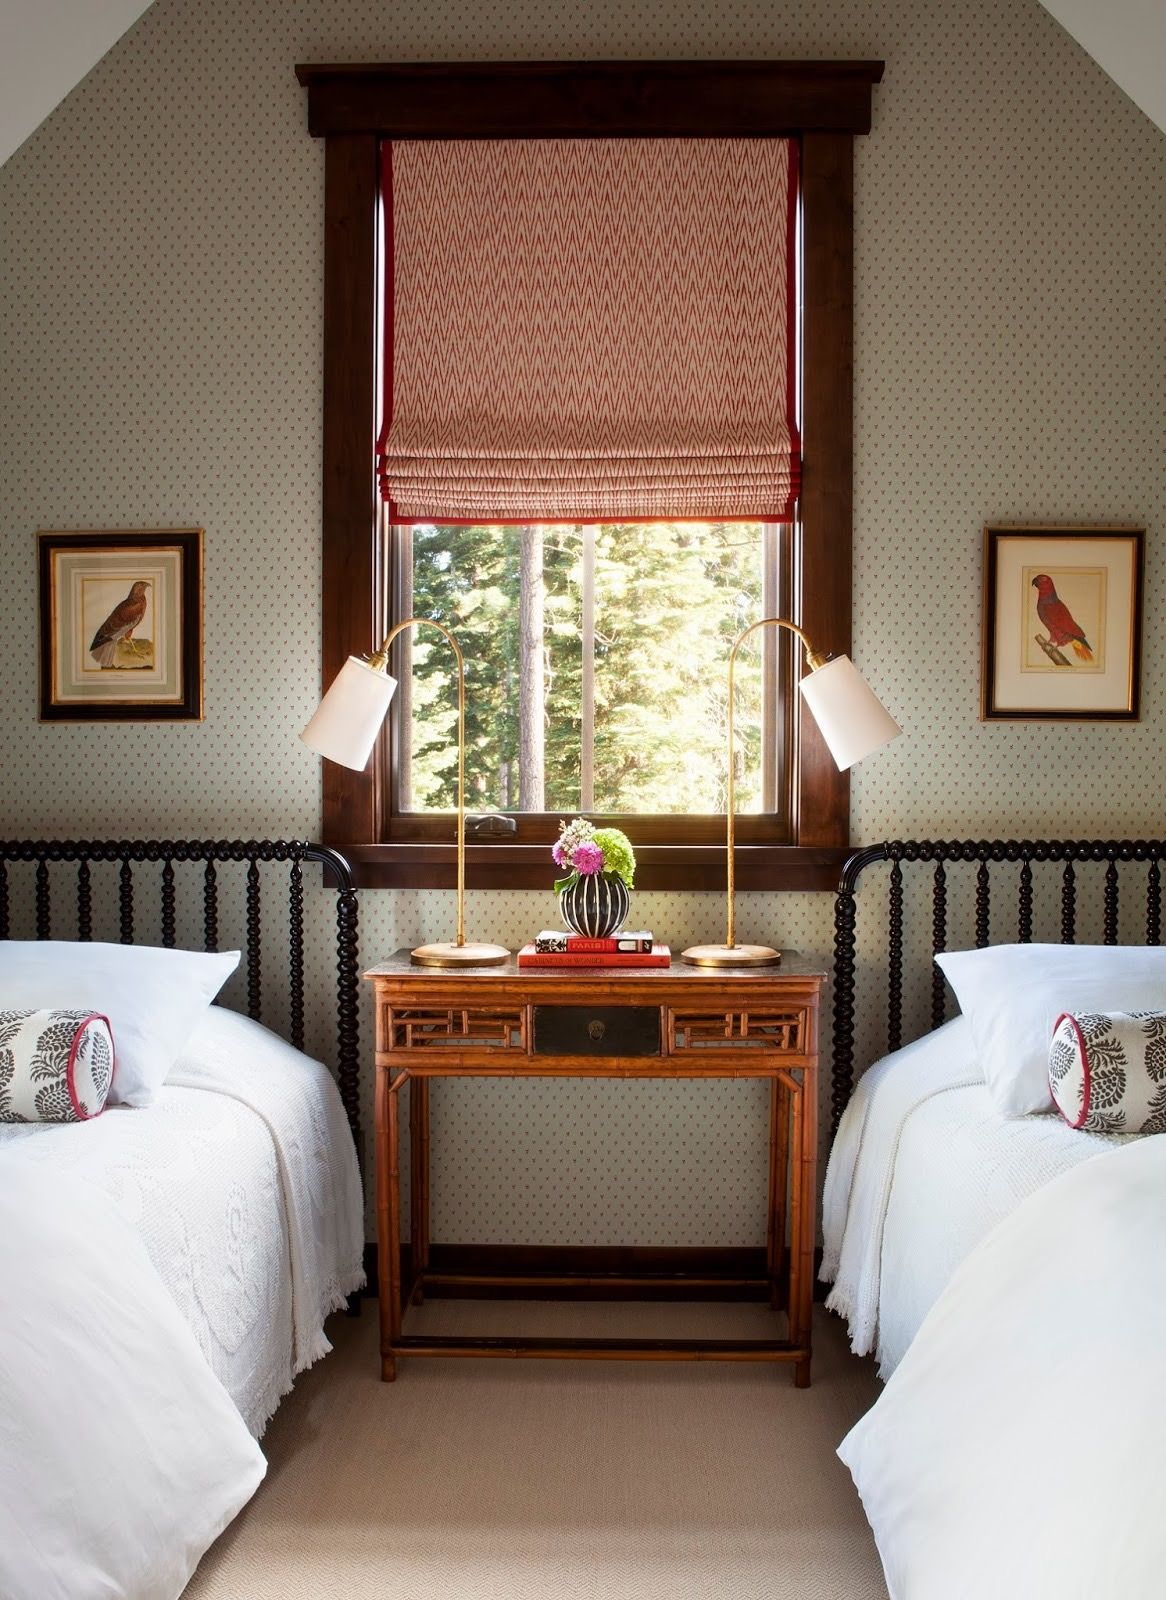 Attic Guest Room With Two Twin Beds Designed By Palmer Weiss